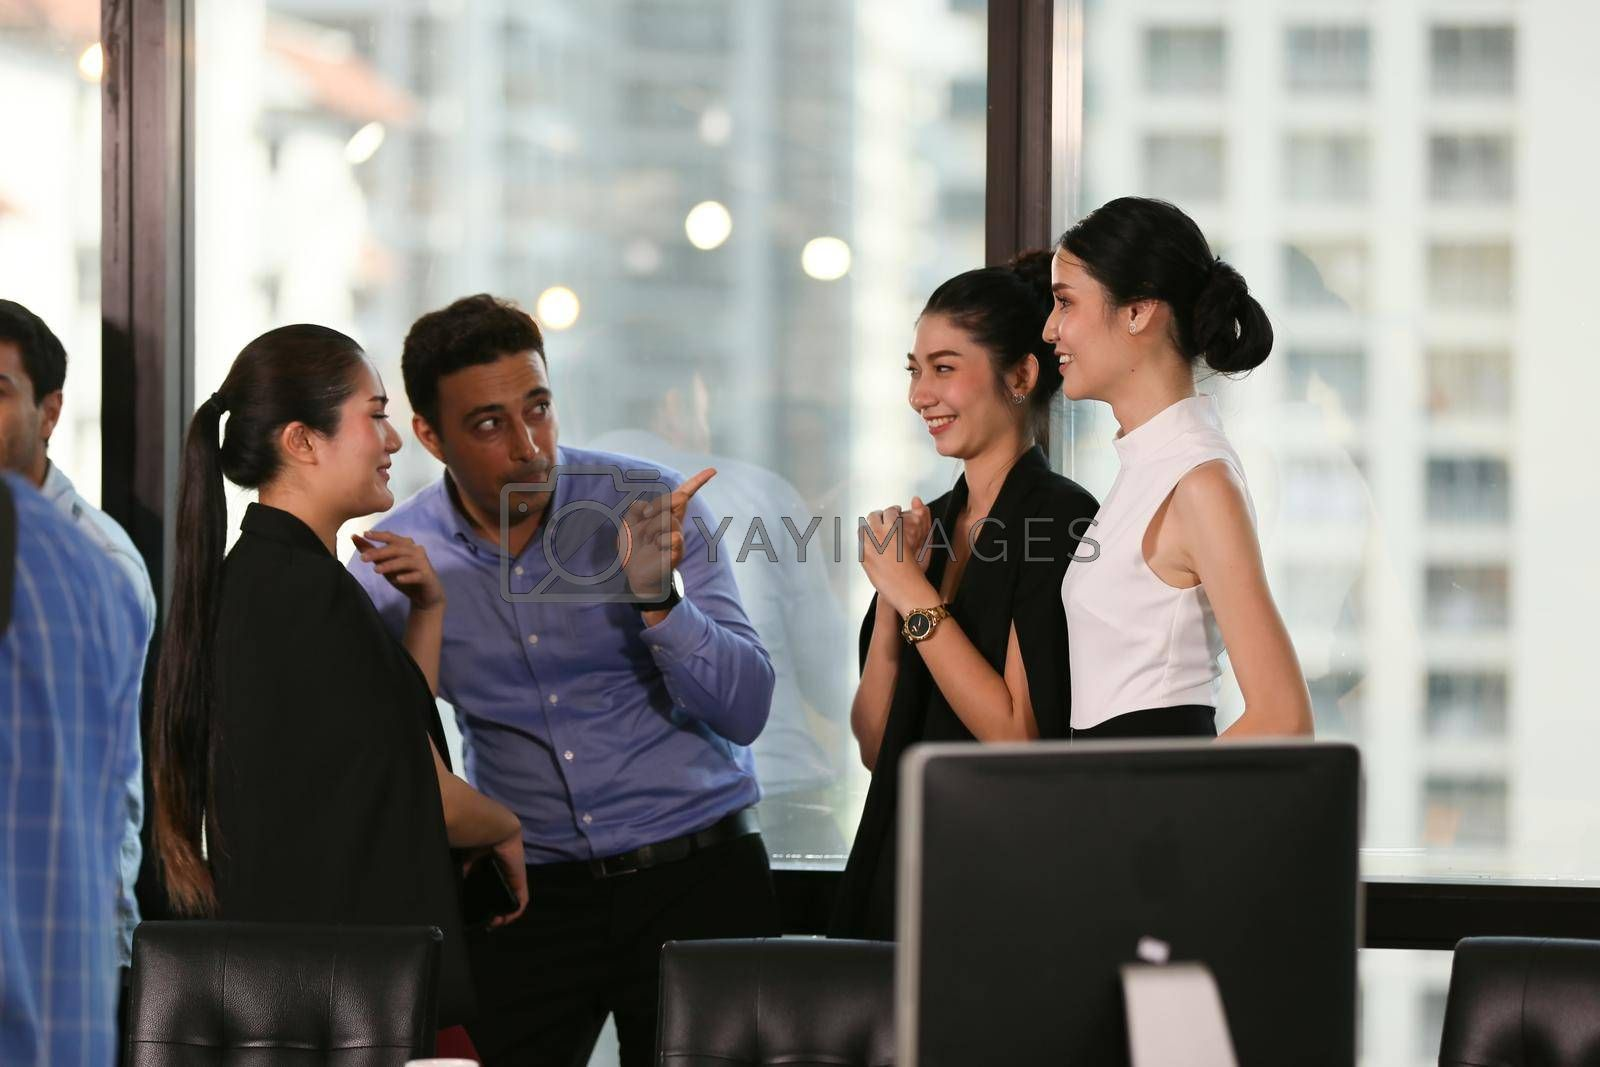 group of business people discussing and meeting in office,  achievement concept.